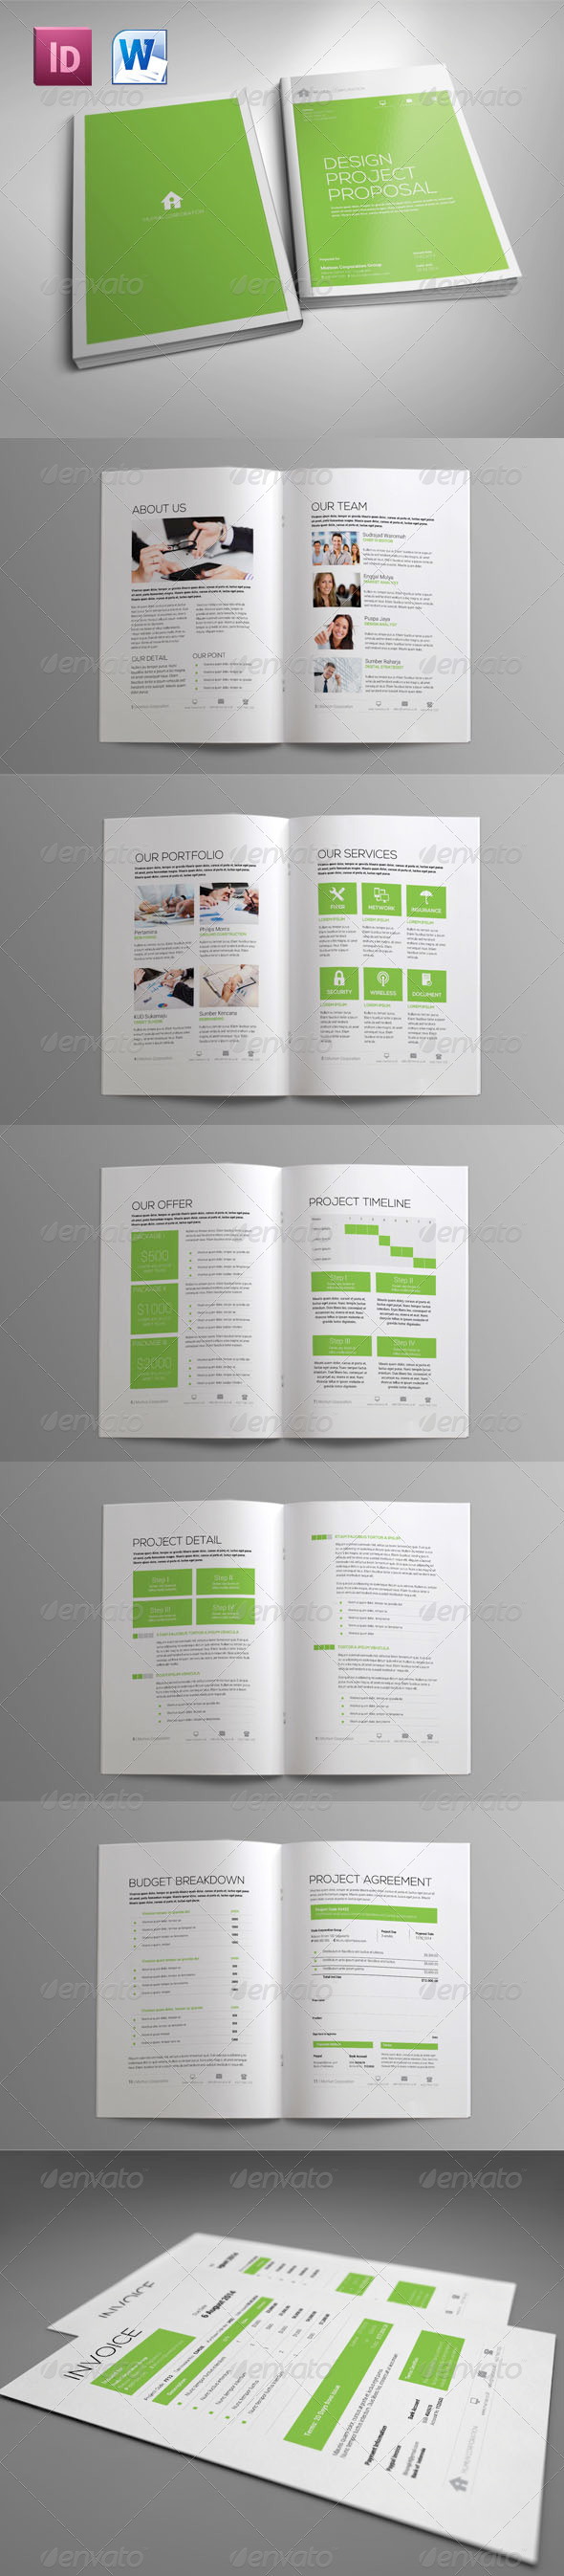 GraphicRiver Sleman Clean Proposal Template Volume 5 6033882